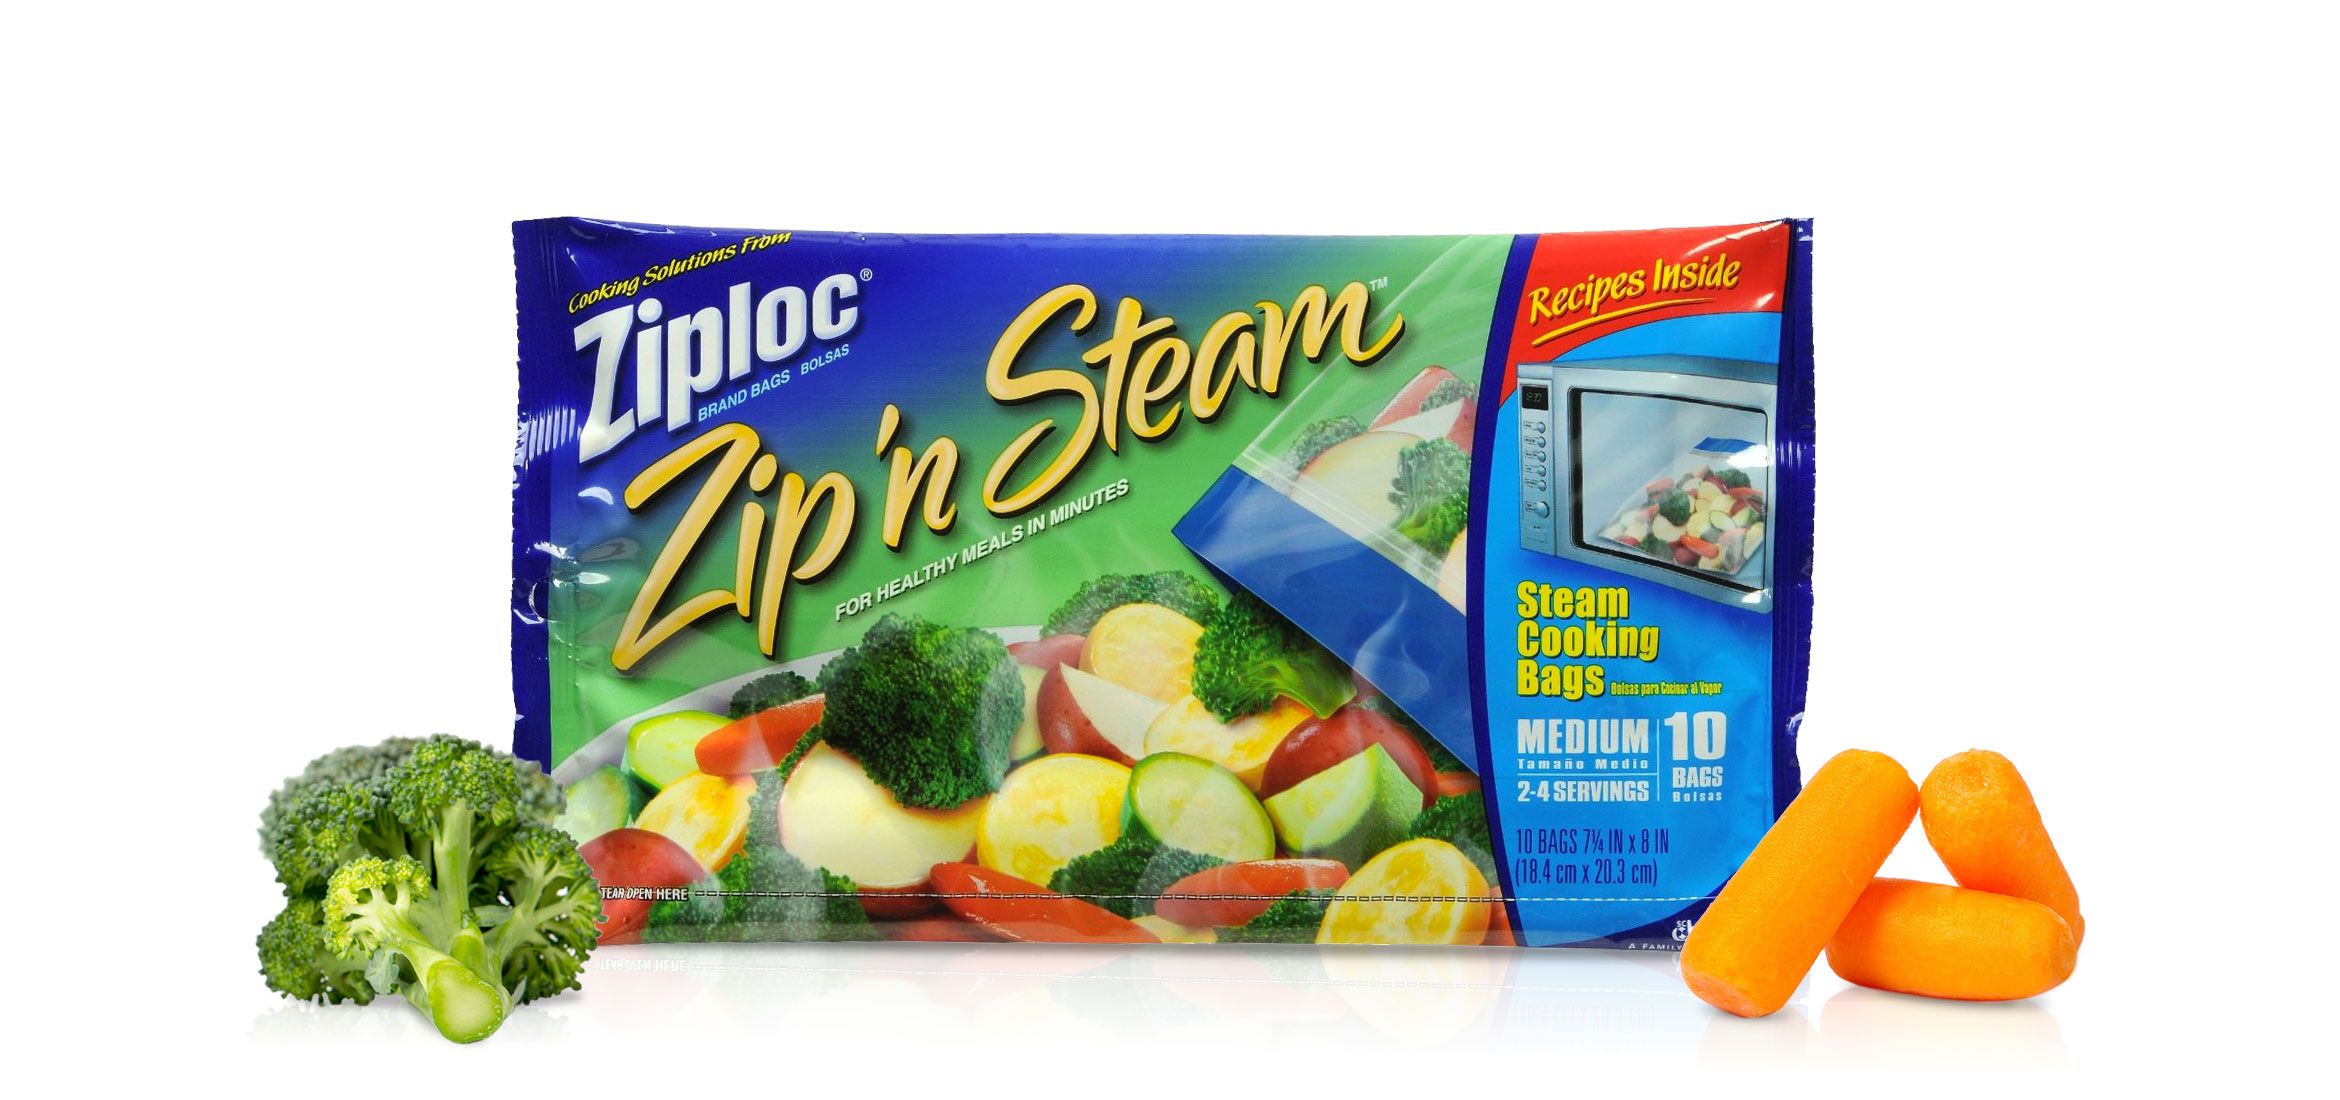 Ziploc Brand Zip N Steam Cooking Bags